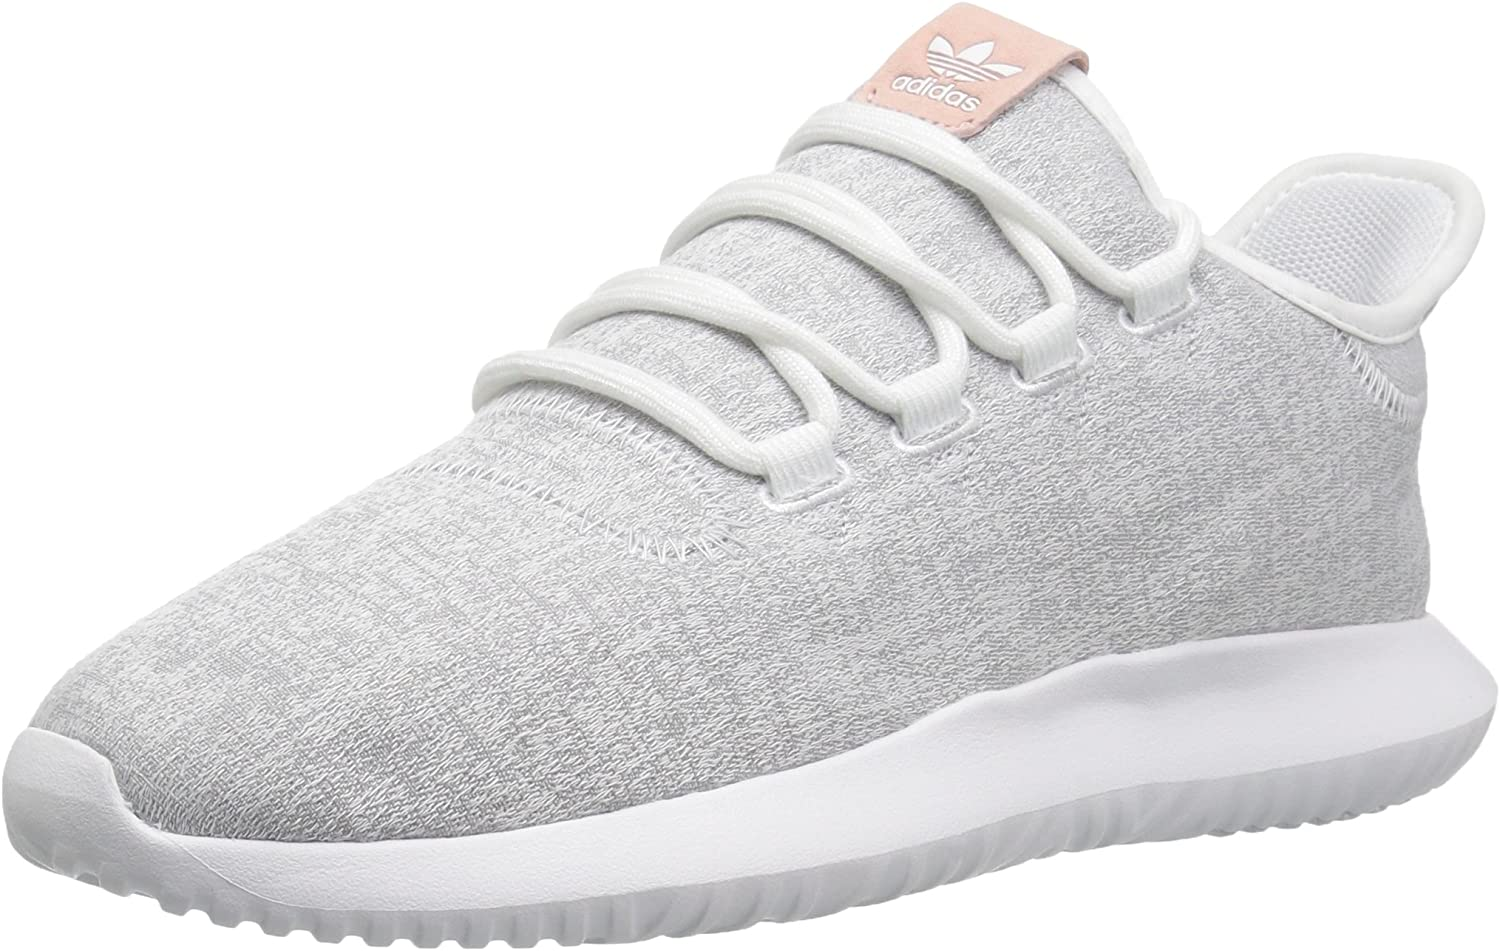 Adidas ORIGINALS Womens Tubular Shadow shoes Fashion Sneakers